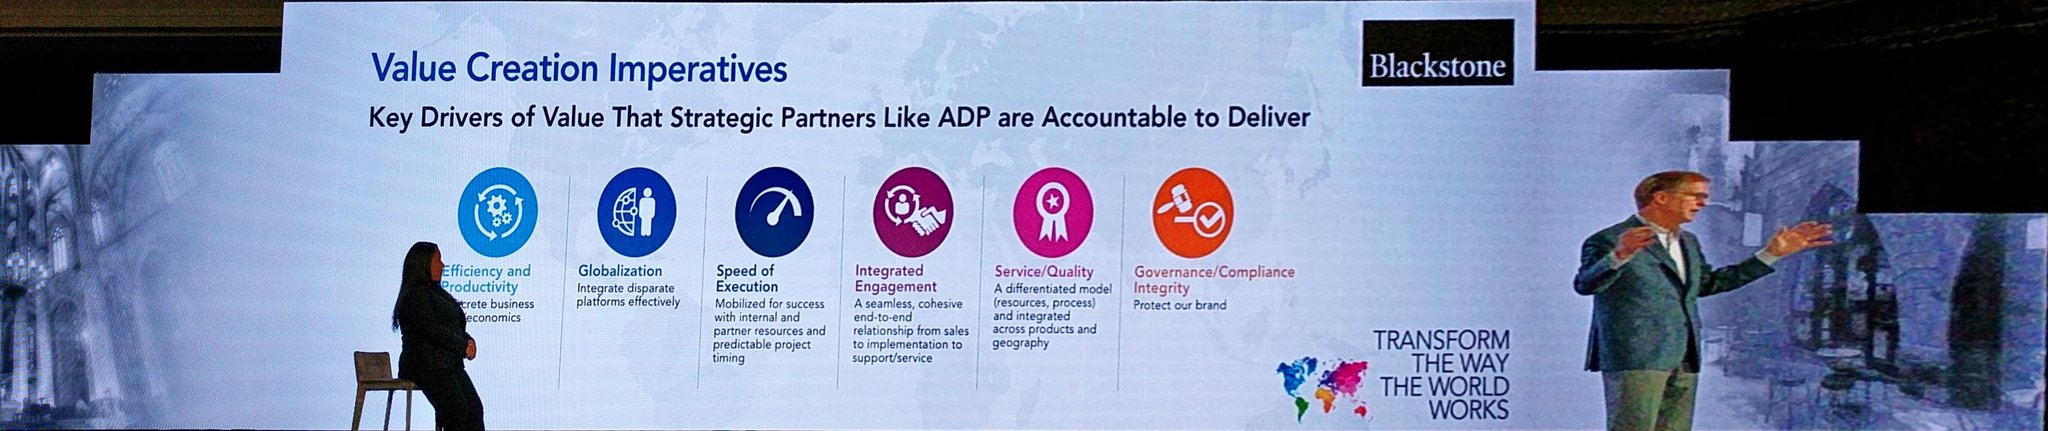 NyPOV - Great checklist of value creation imperatives shared by @blackstone Beutler #ADPReThink https://t.co/RgUIObZqKI